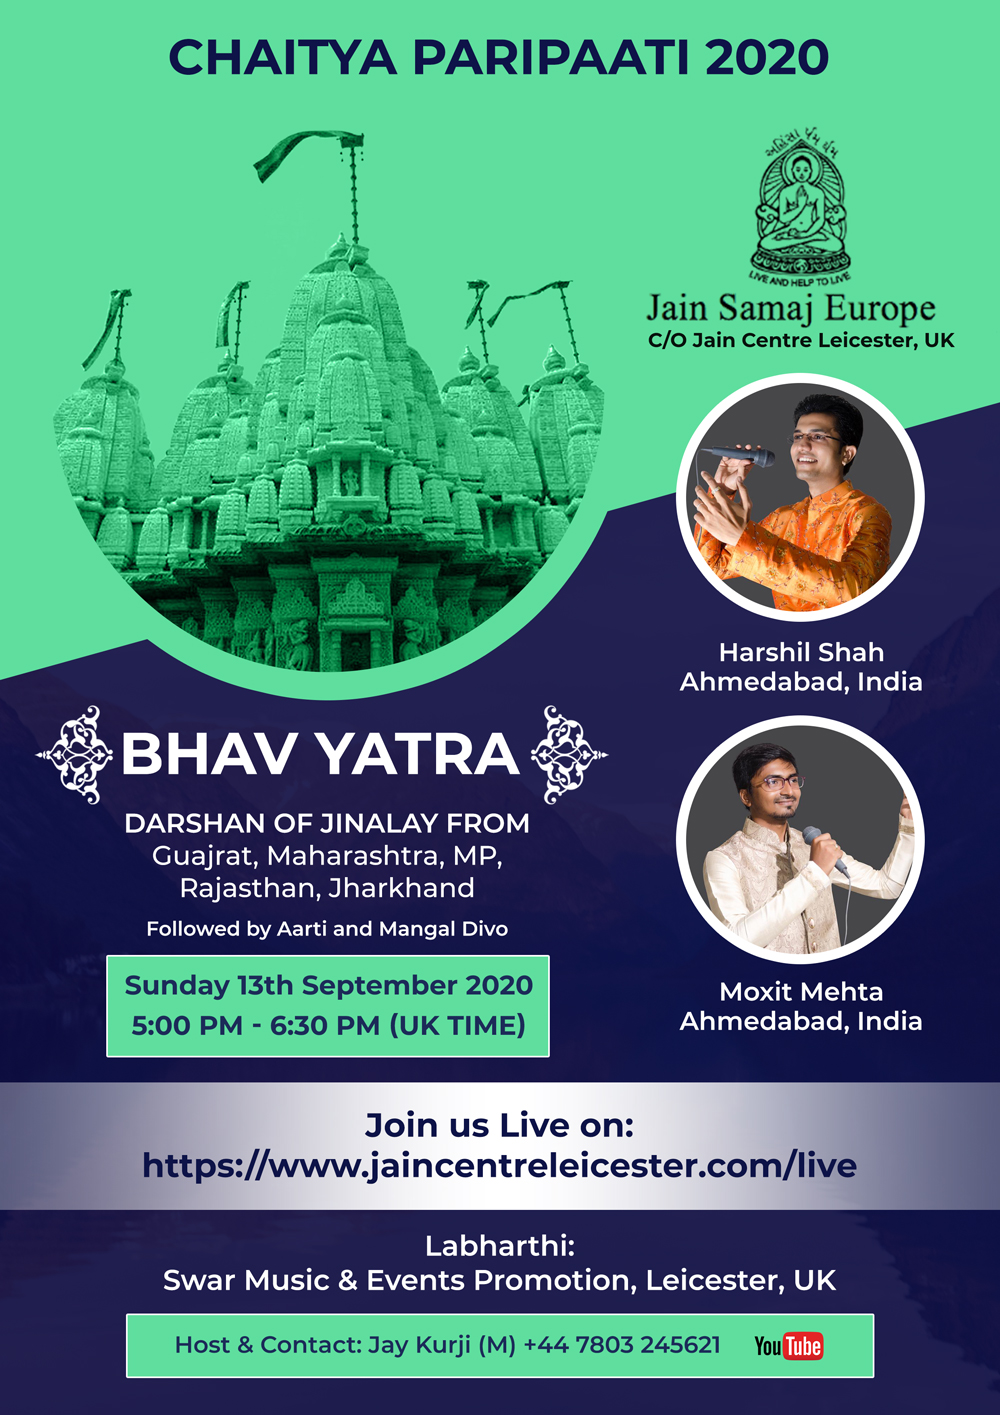 Chaitya Paripaati Sunday, 13th September 2020 By Harshil Shah & Moxit Mehta Ahmedabad Time: 5.00 PM (UK Time) YouTube Link: https://www.jaincentreleicester.com/live Duration: 1 hour 30 minutes